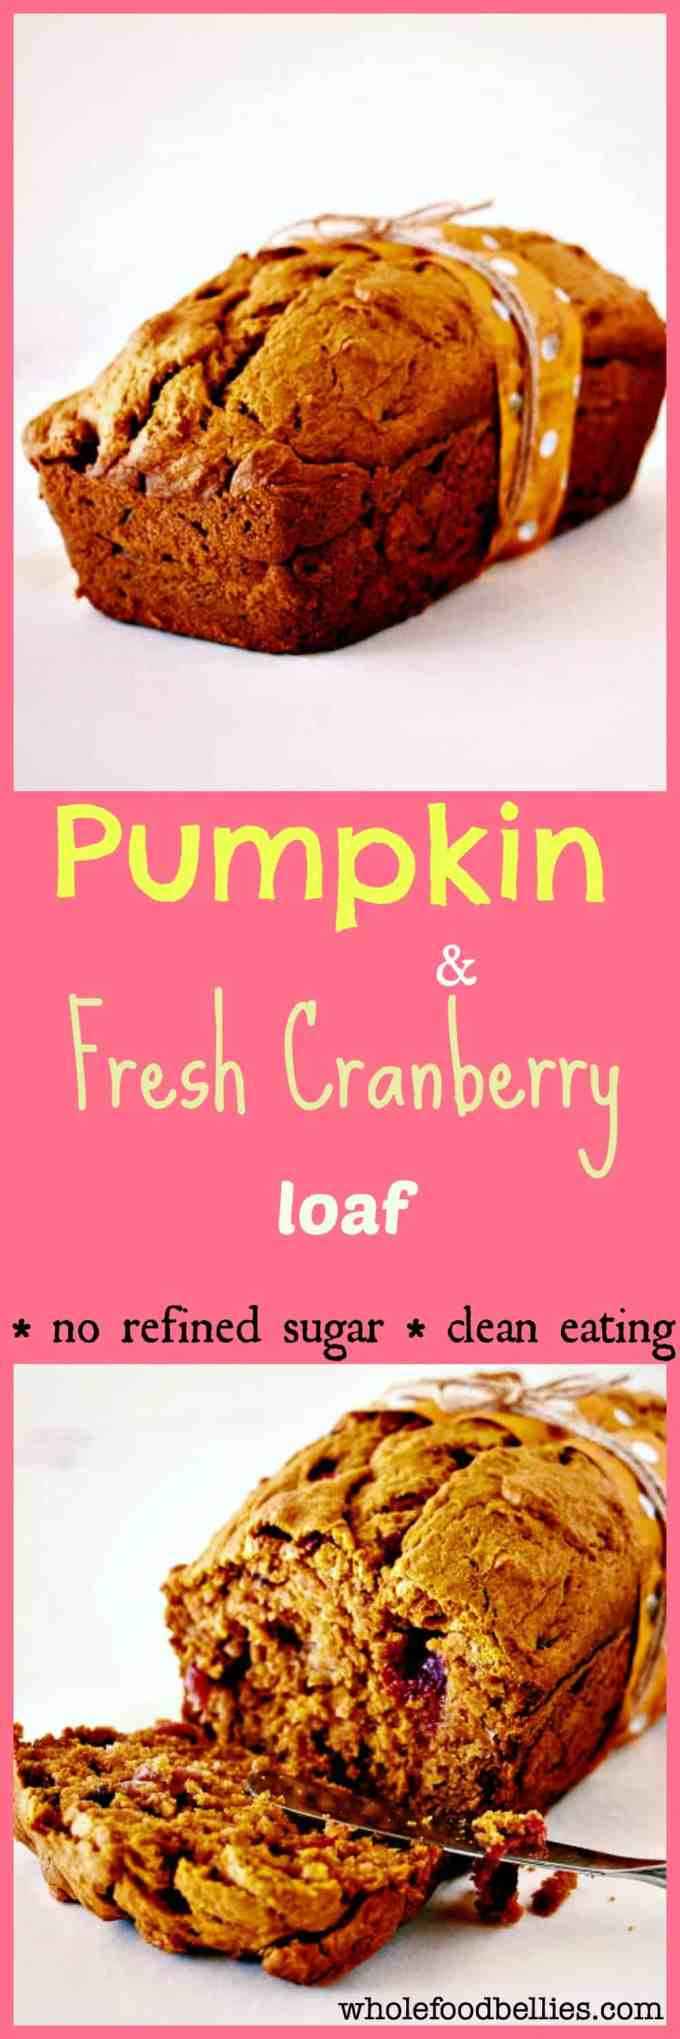 Pumpkin and Fresh Cranberry Bread is the perfect treat to enjoy with a cup of tea in the cooler months. Completely from scratch and full of goodness